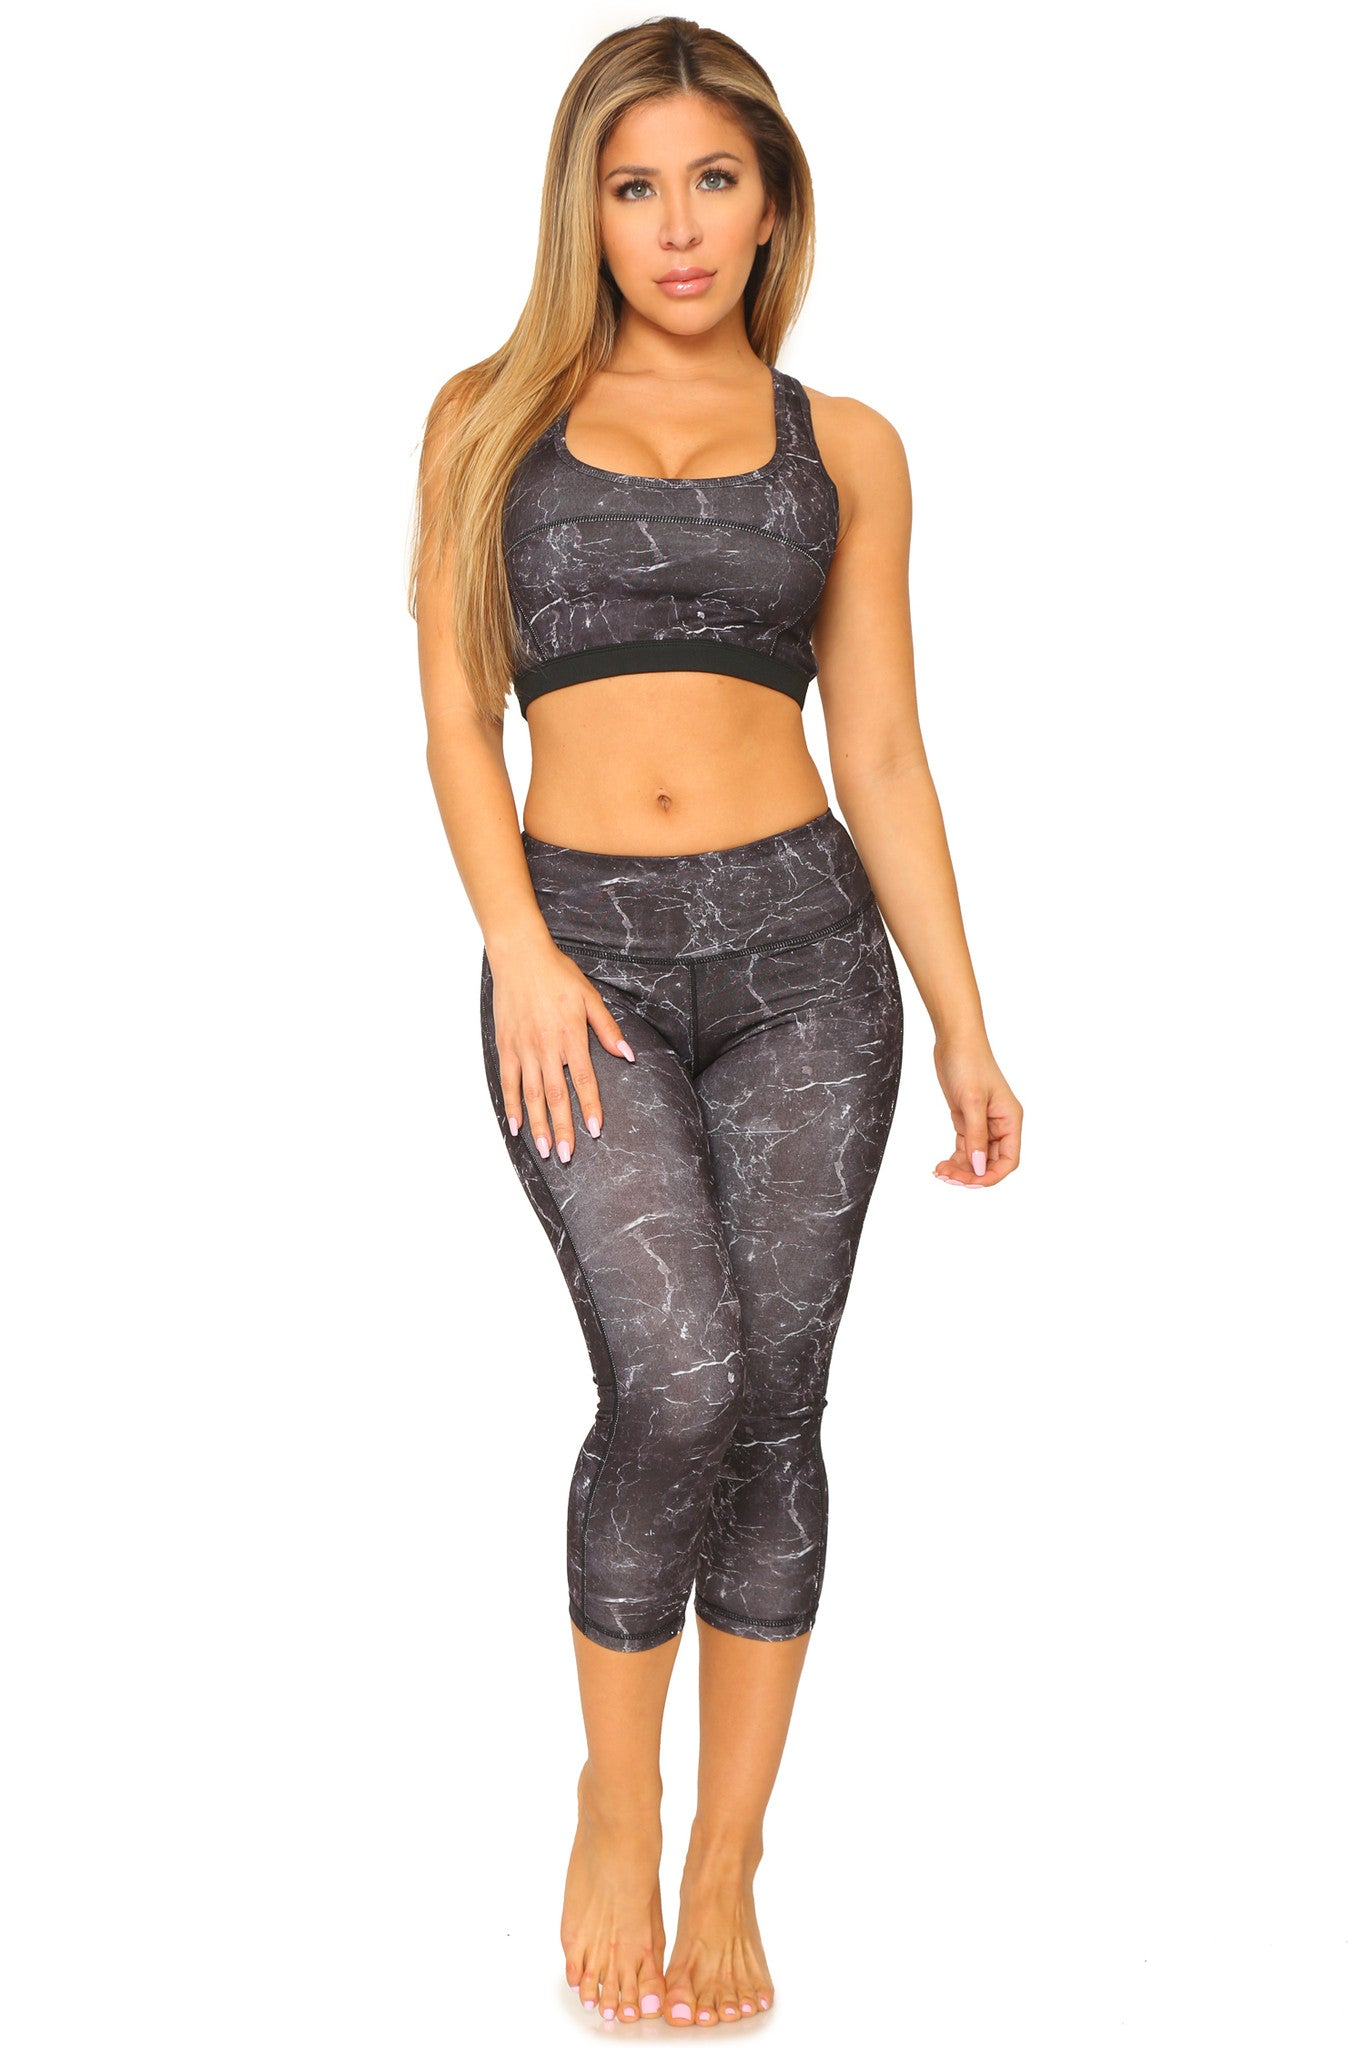 CHERIE WORKOUT SET - Glam Envy - 1